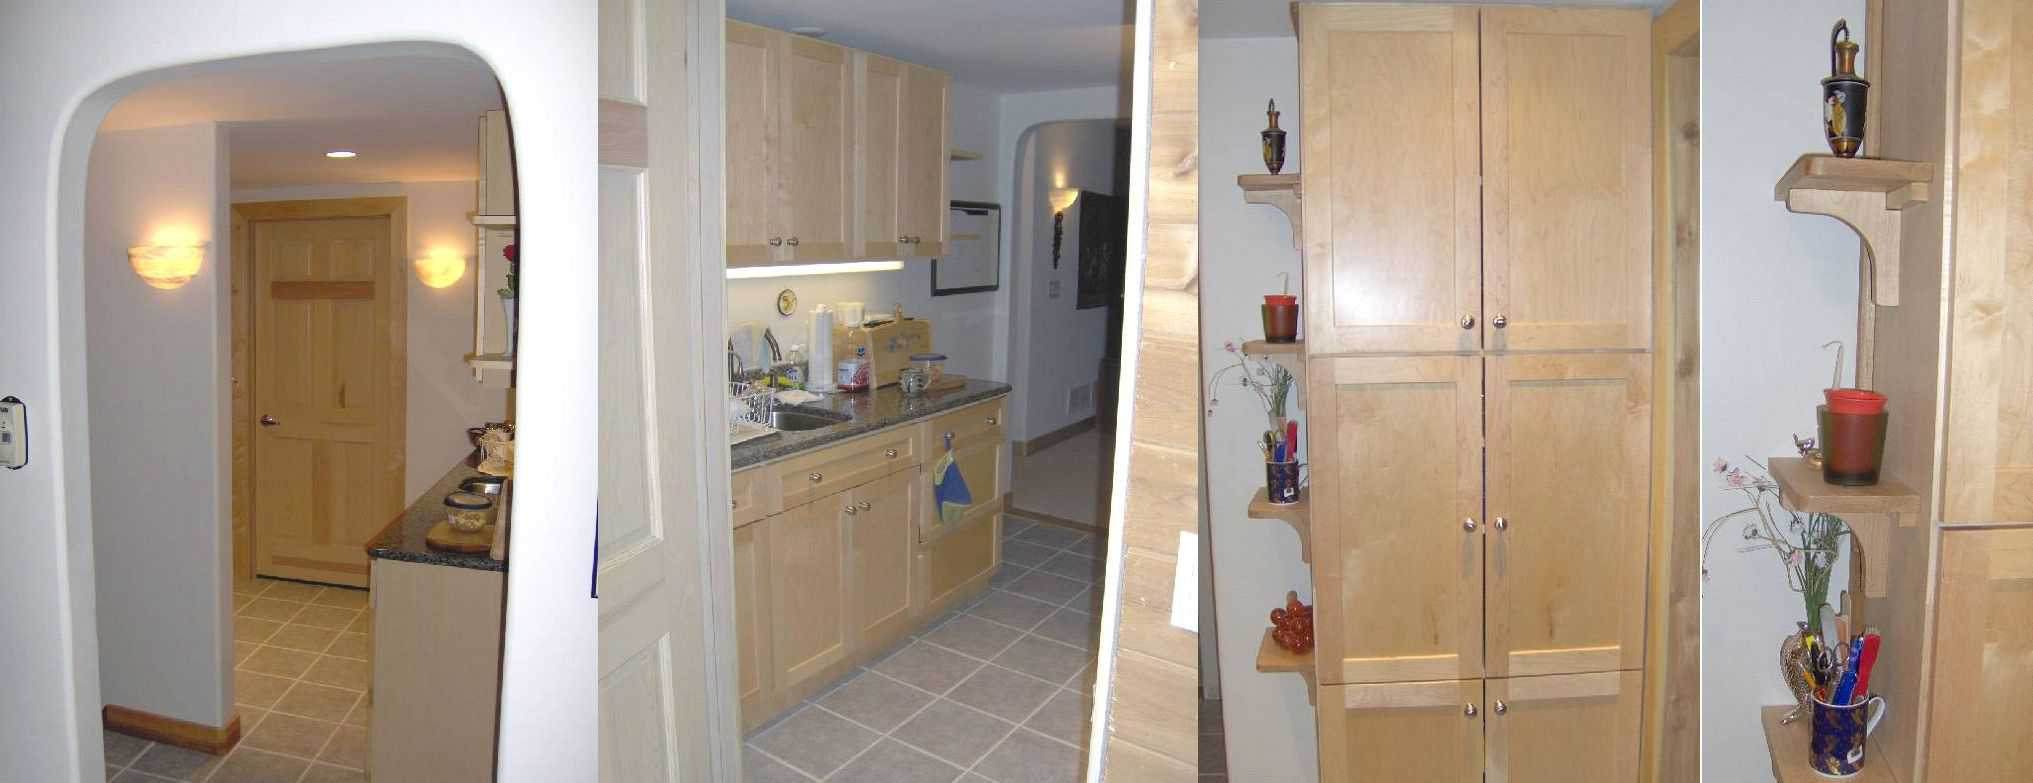 basement-remodel-kitchenette-reclaimed-custom-cabinetry-tilework-granite-maple